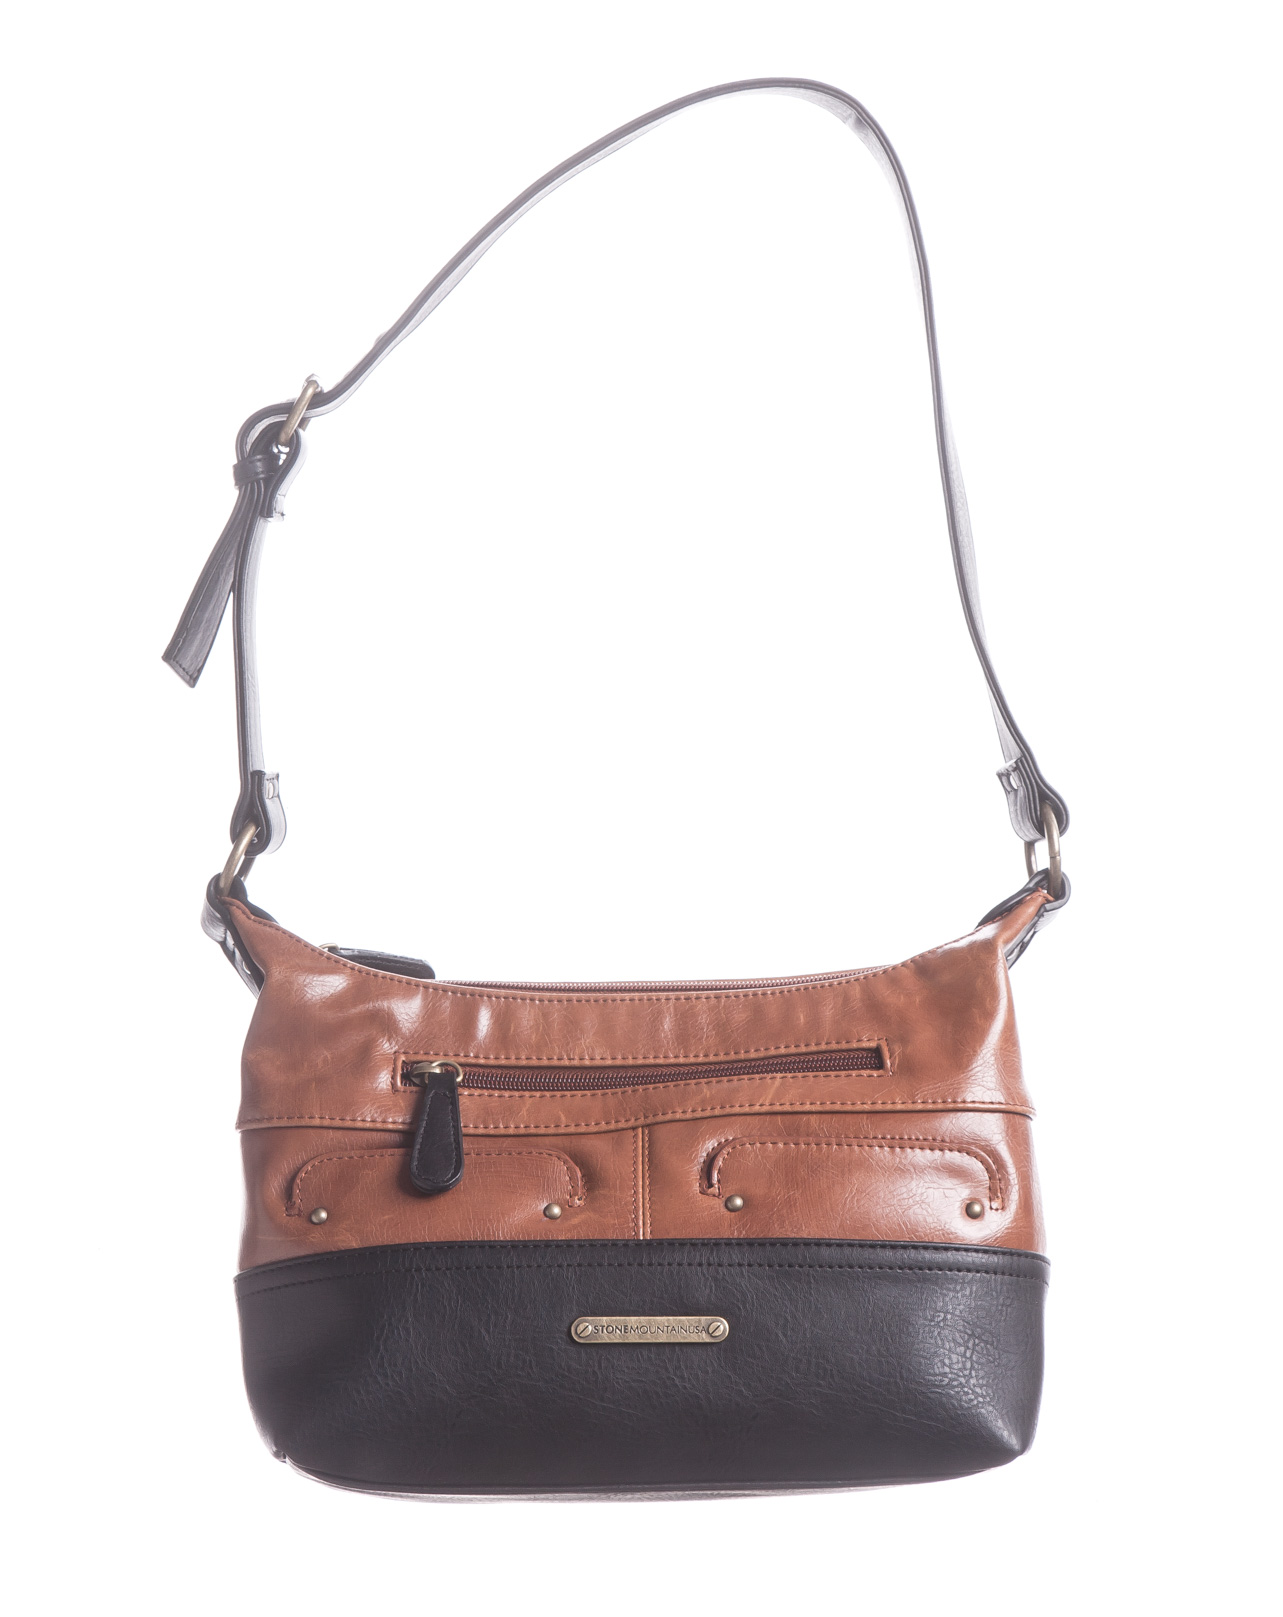 Vintage Leather Hobo Bag w/Phone Charger